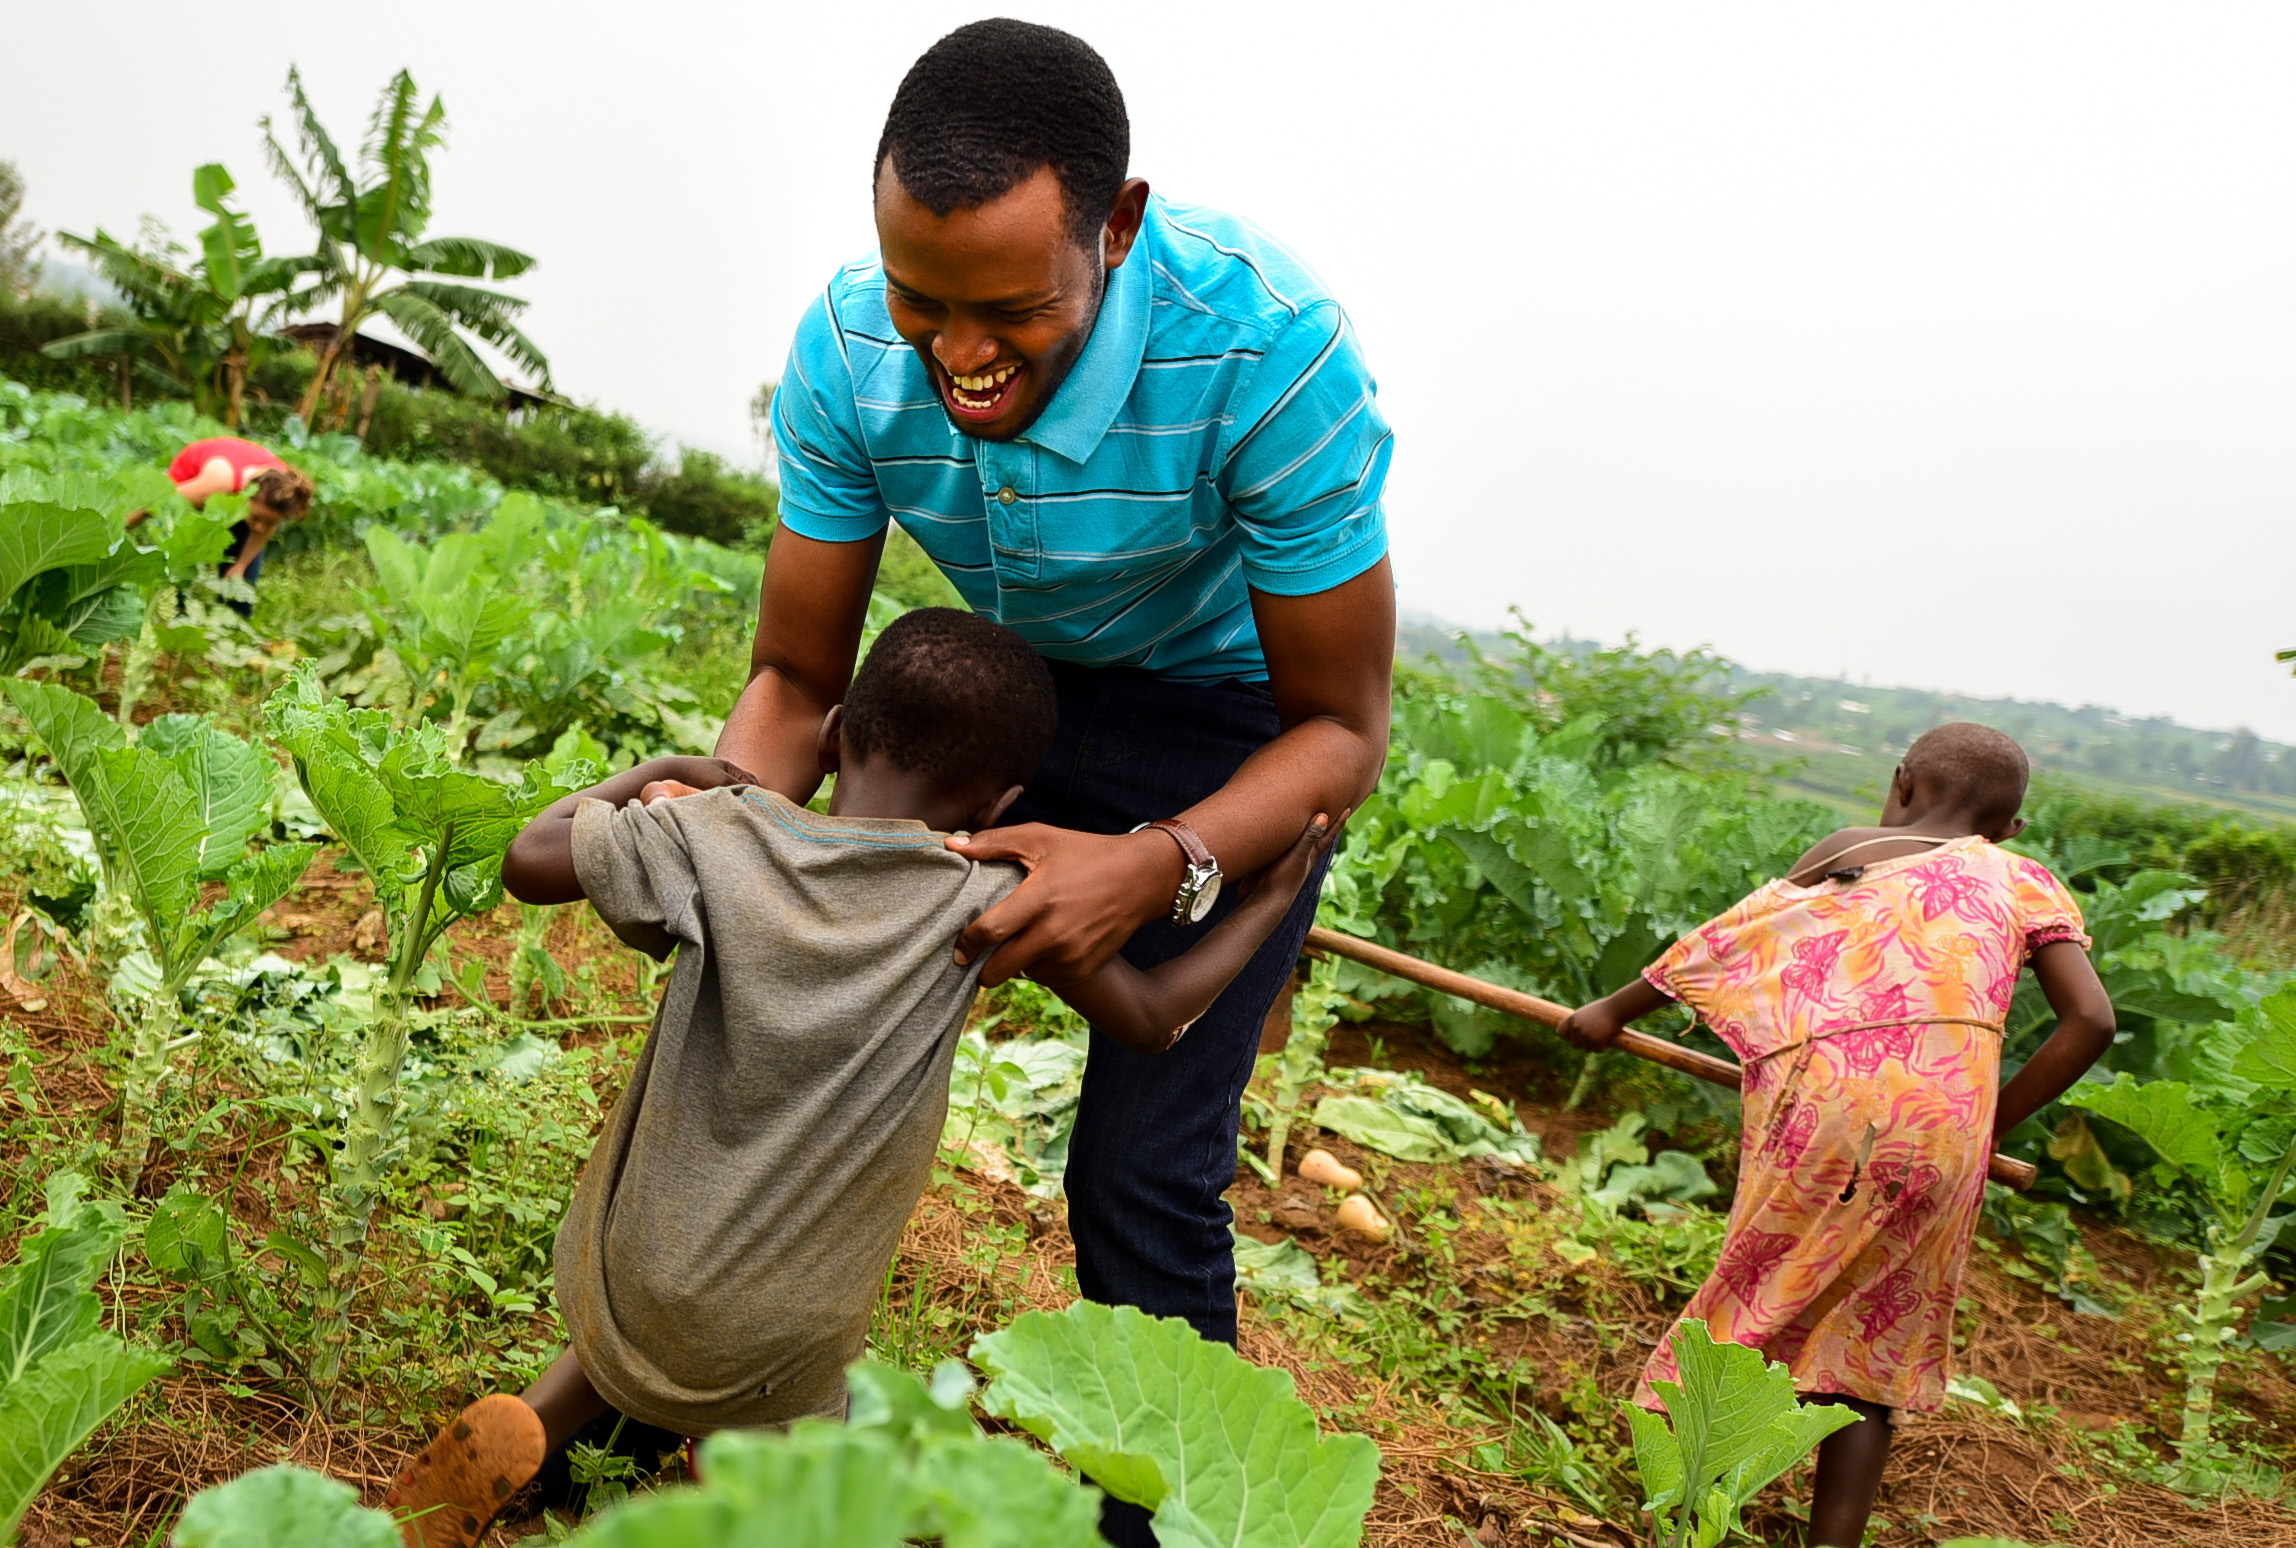 Solomon plays with Benja, a child enrolled in GHI's Early Childhood Development Program, during GHI's January 2018 Umuganda Day.